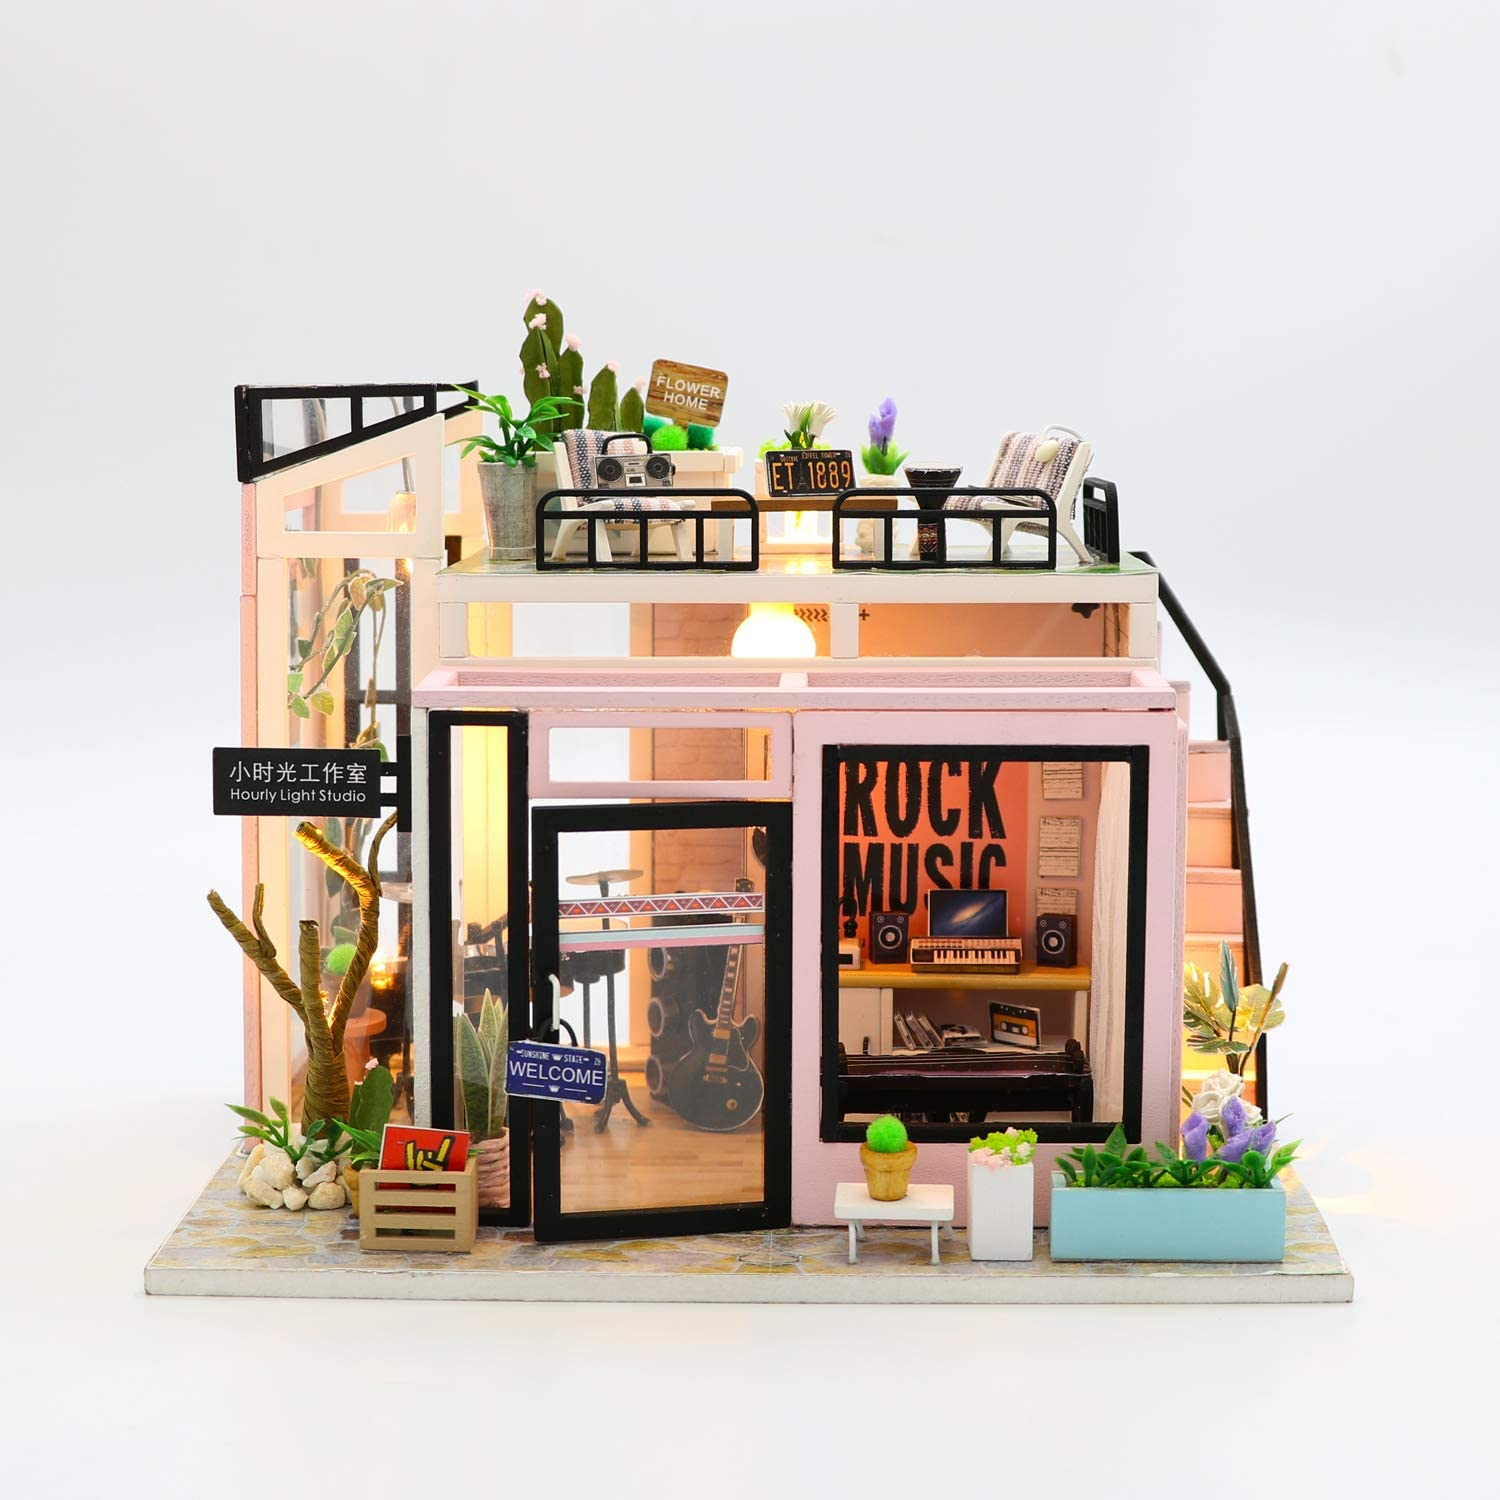 PLC DIY Miniature Dollhouse Kit Tiny Furniture Music Studio with Music Movement Best Gift for Adults and Teens with LED 1:24 Scale with Green Plants and Instruments Building Kit